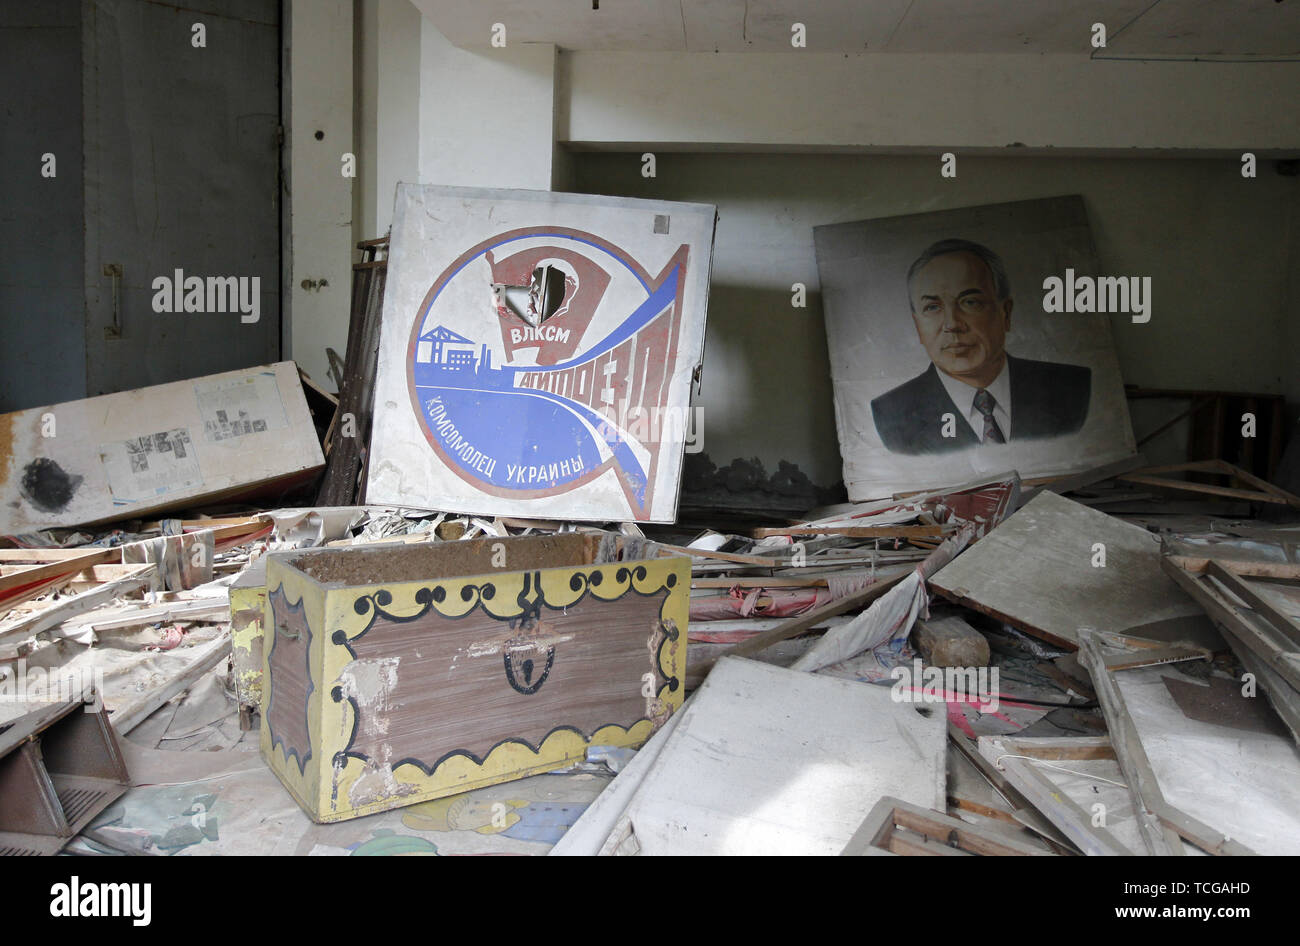 June 7, 2019 - Kiev, Ukraine - Soviet posters are visible in a building in abandoned city of Pripyat, mentioned in the HBO's television miniseries 'Chernobyl', with a view on Chernobyl nuclear plantm during a tour in Chernobyl, Ukraine, on 7 June 2019. The success of a U.S. HBO's television miniseries 'Chernobyl' has renewed interest around the world on Ukraine's 1986 nuclear disaster. Tourism to Chernobyl has spiked 40% following the debut of the HBO series in May, tour agencies reported . Last April Ukrainians marked the 33rd anniversary of the Chernobyl disaster in then-Soviet Ukraine, caus - Stock Image